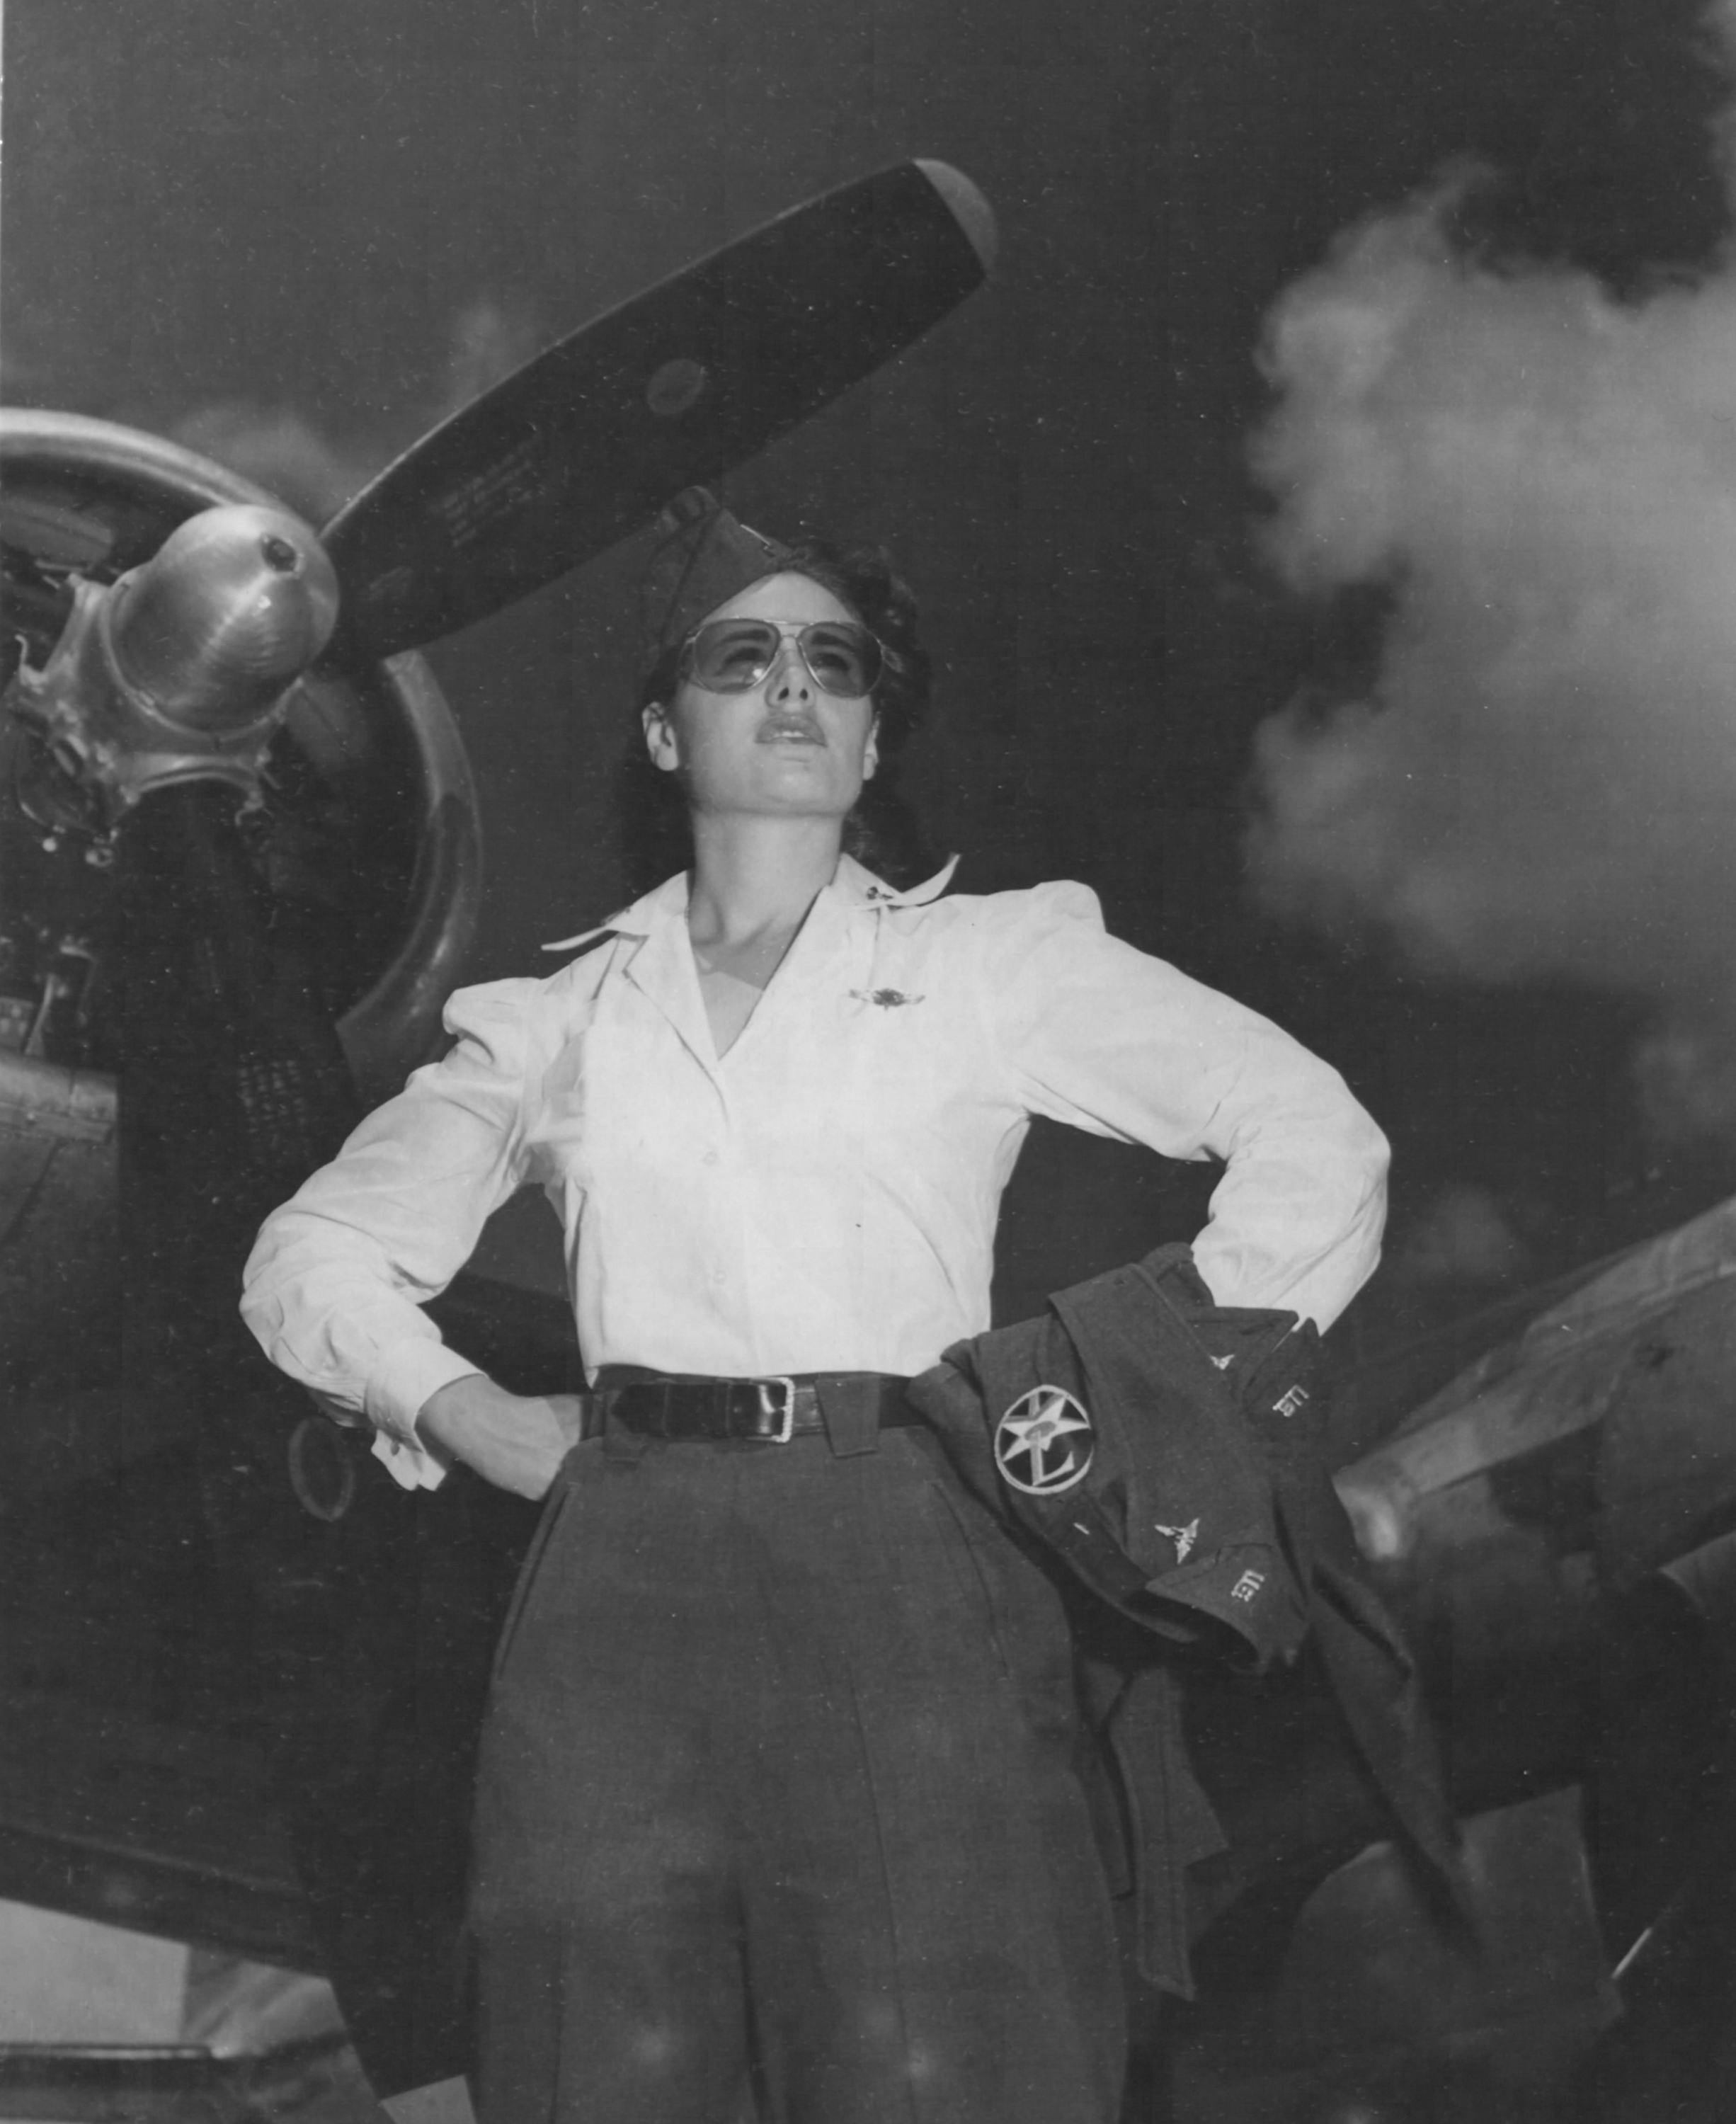 Flight Nurse of the 7th Air Force